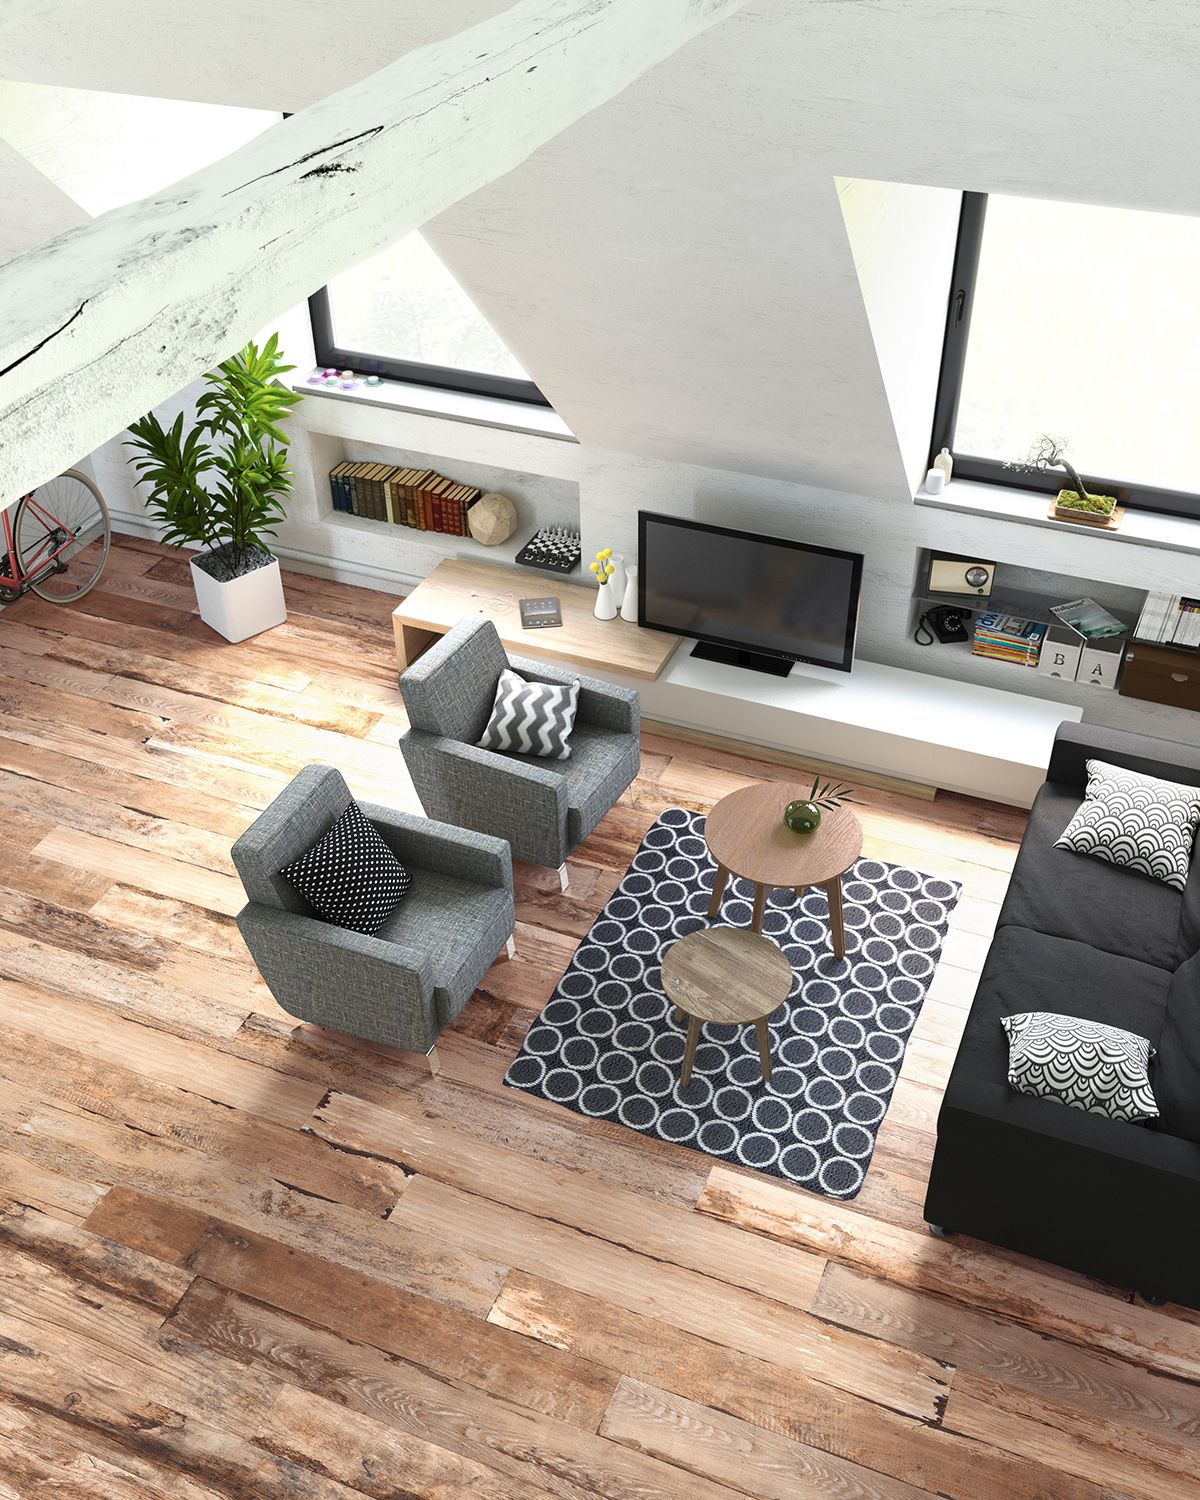 Kenzo collection wood experience floortile tile porcelain floortile tile porcelain pavimento livingroom dailygadgetfo Gallery